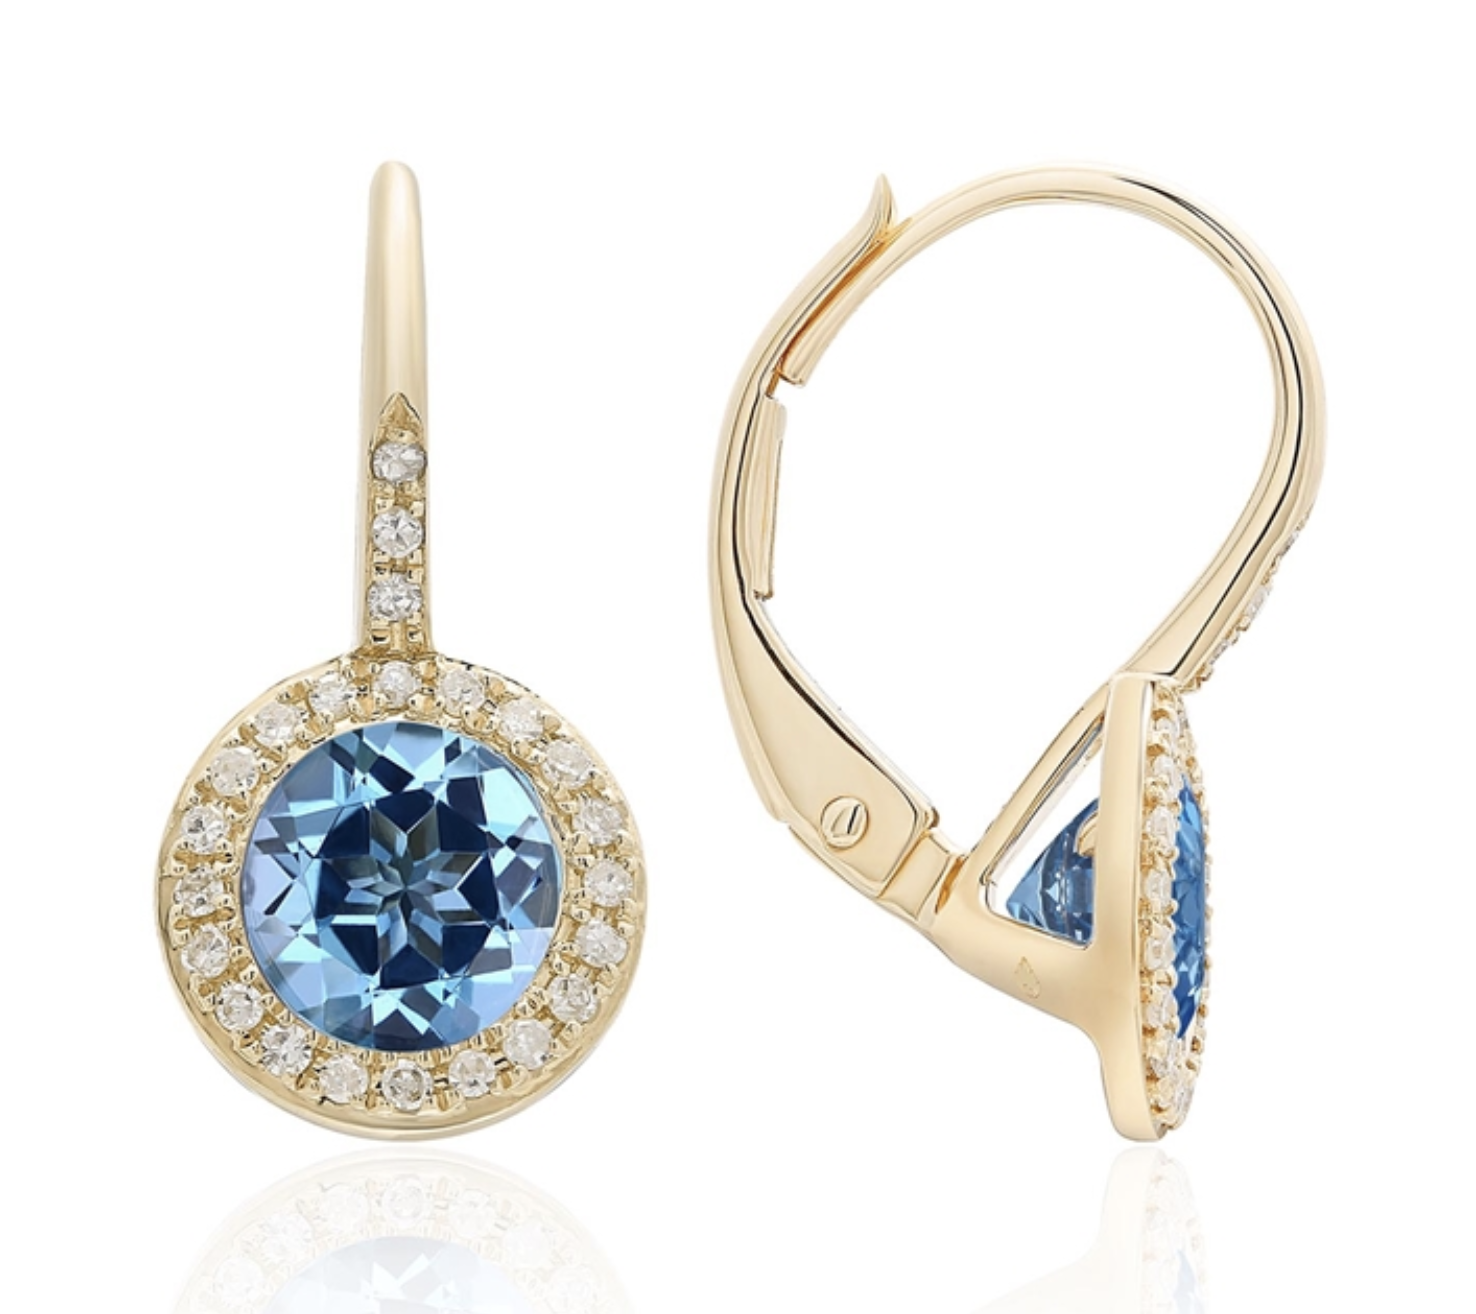 Luvente Yellow Gold Diamond Pave & Blue Topaz Earrings